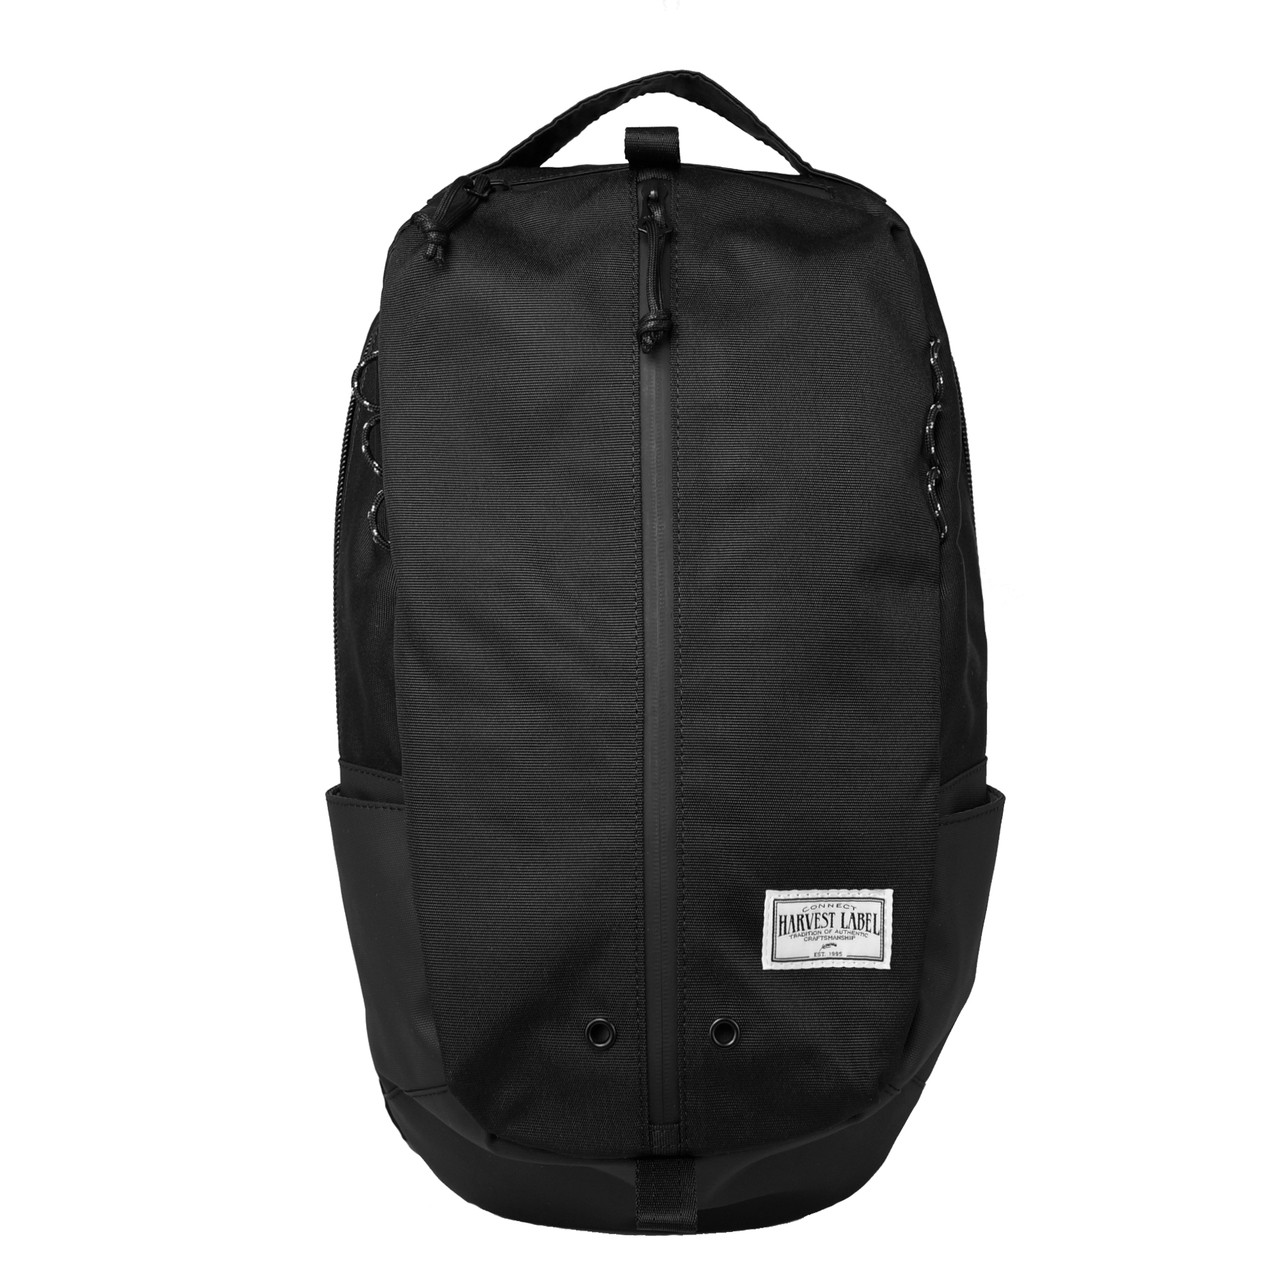 03d7abc5bc59 Harvest Label Connect Sling Pack Sport Large Mono Sling Backpack ...